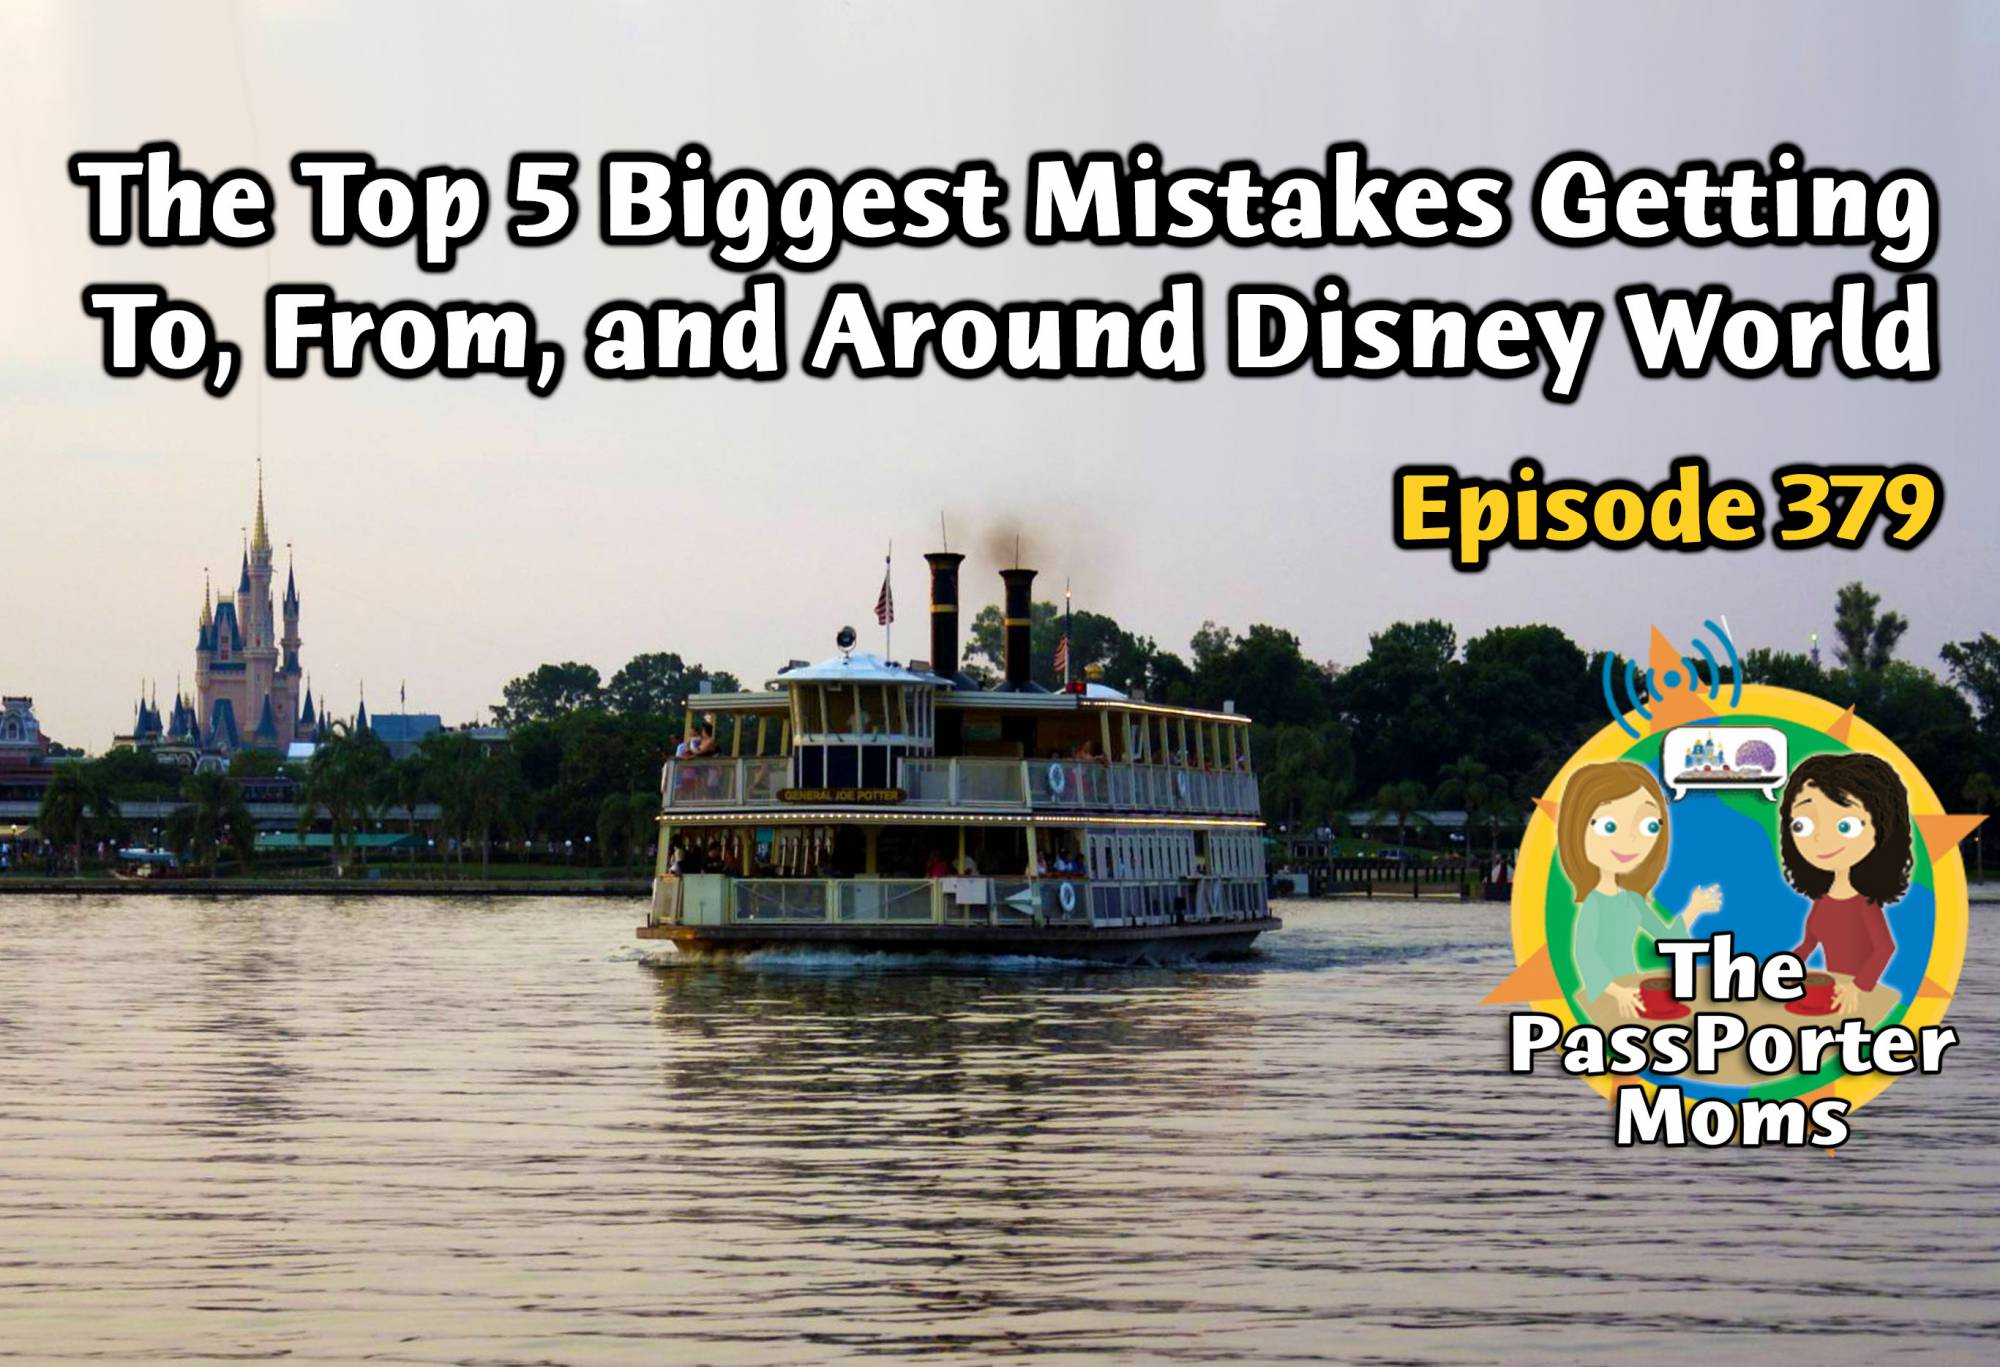 Top 5 Mistakes Getting To, From, And Around Walt Disney World